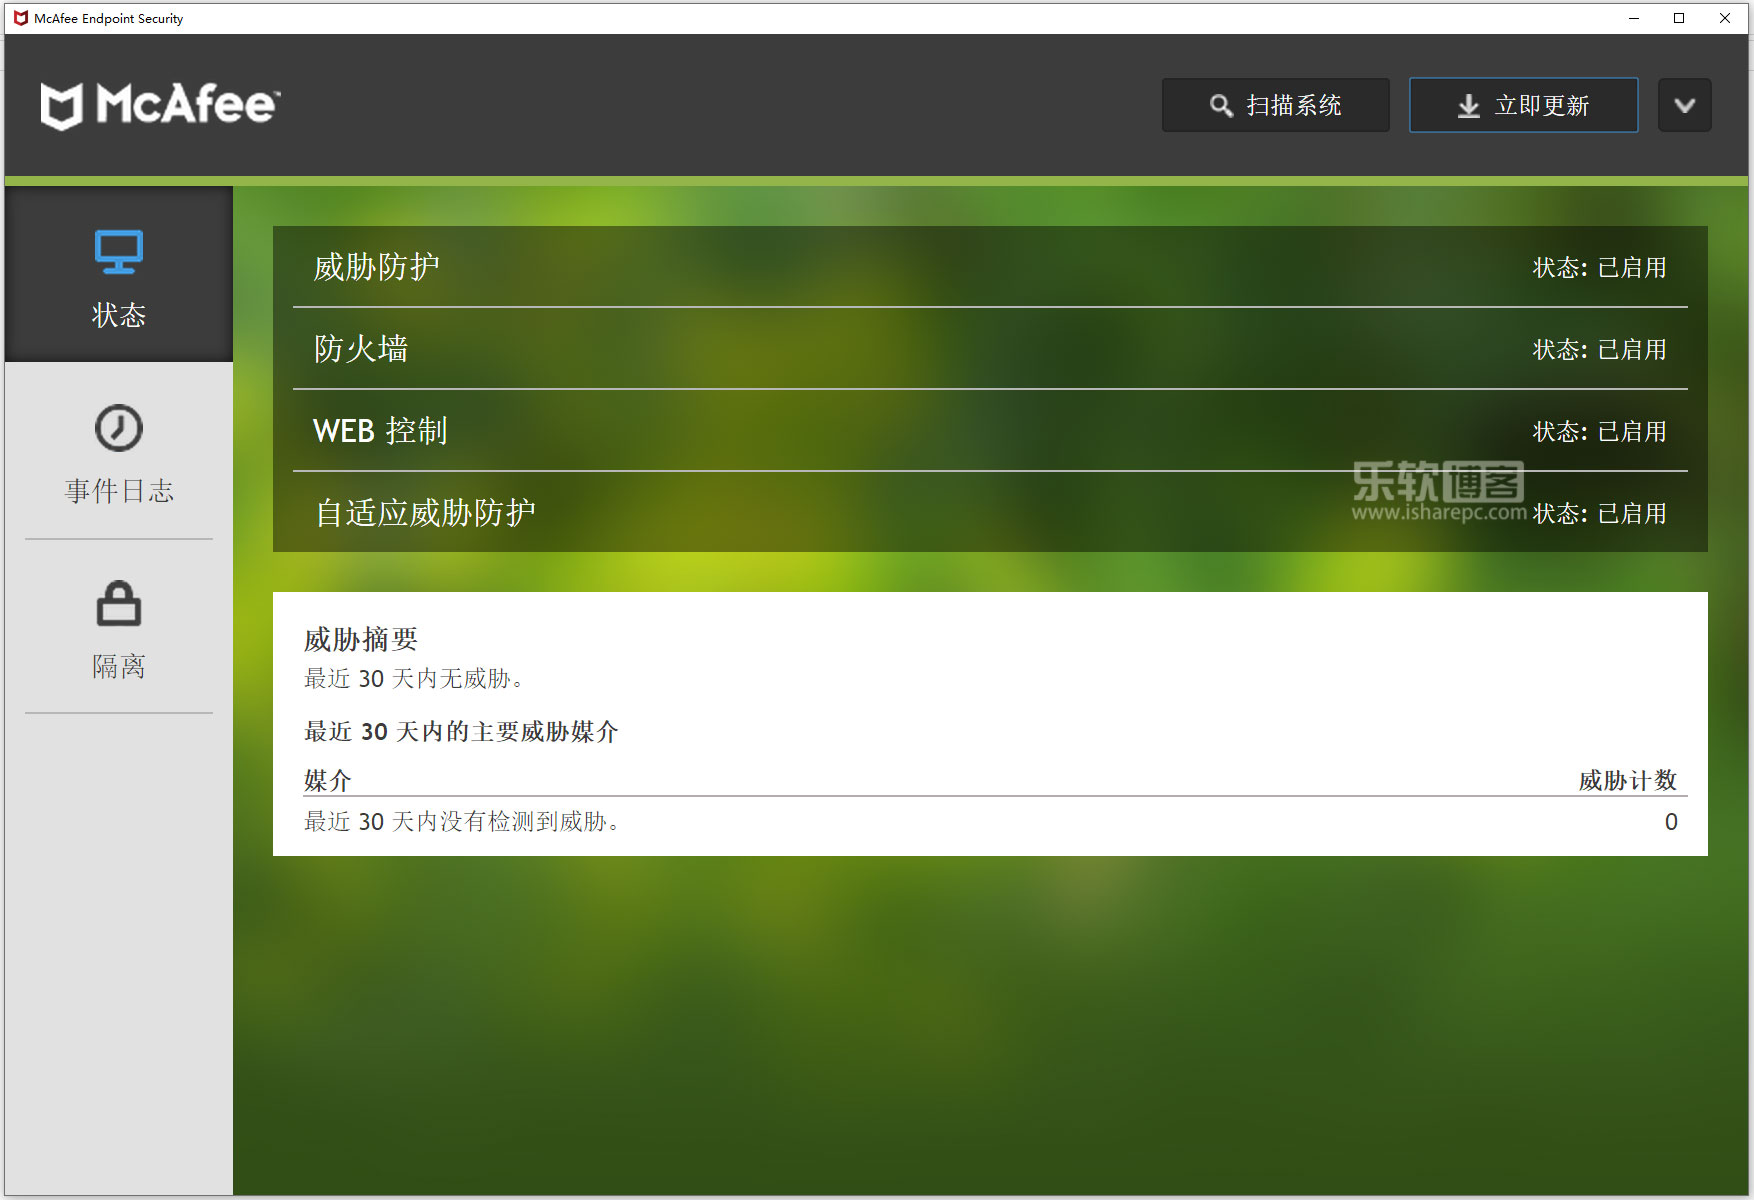 迈克菲McAfee Endpoint Security